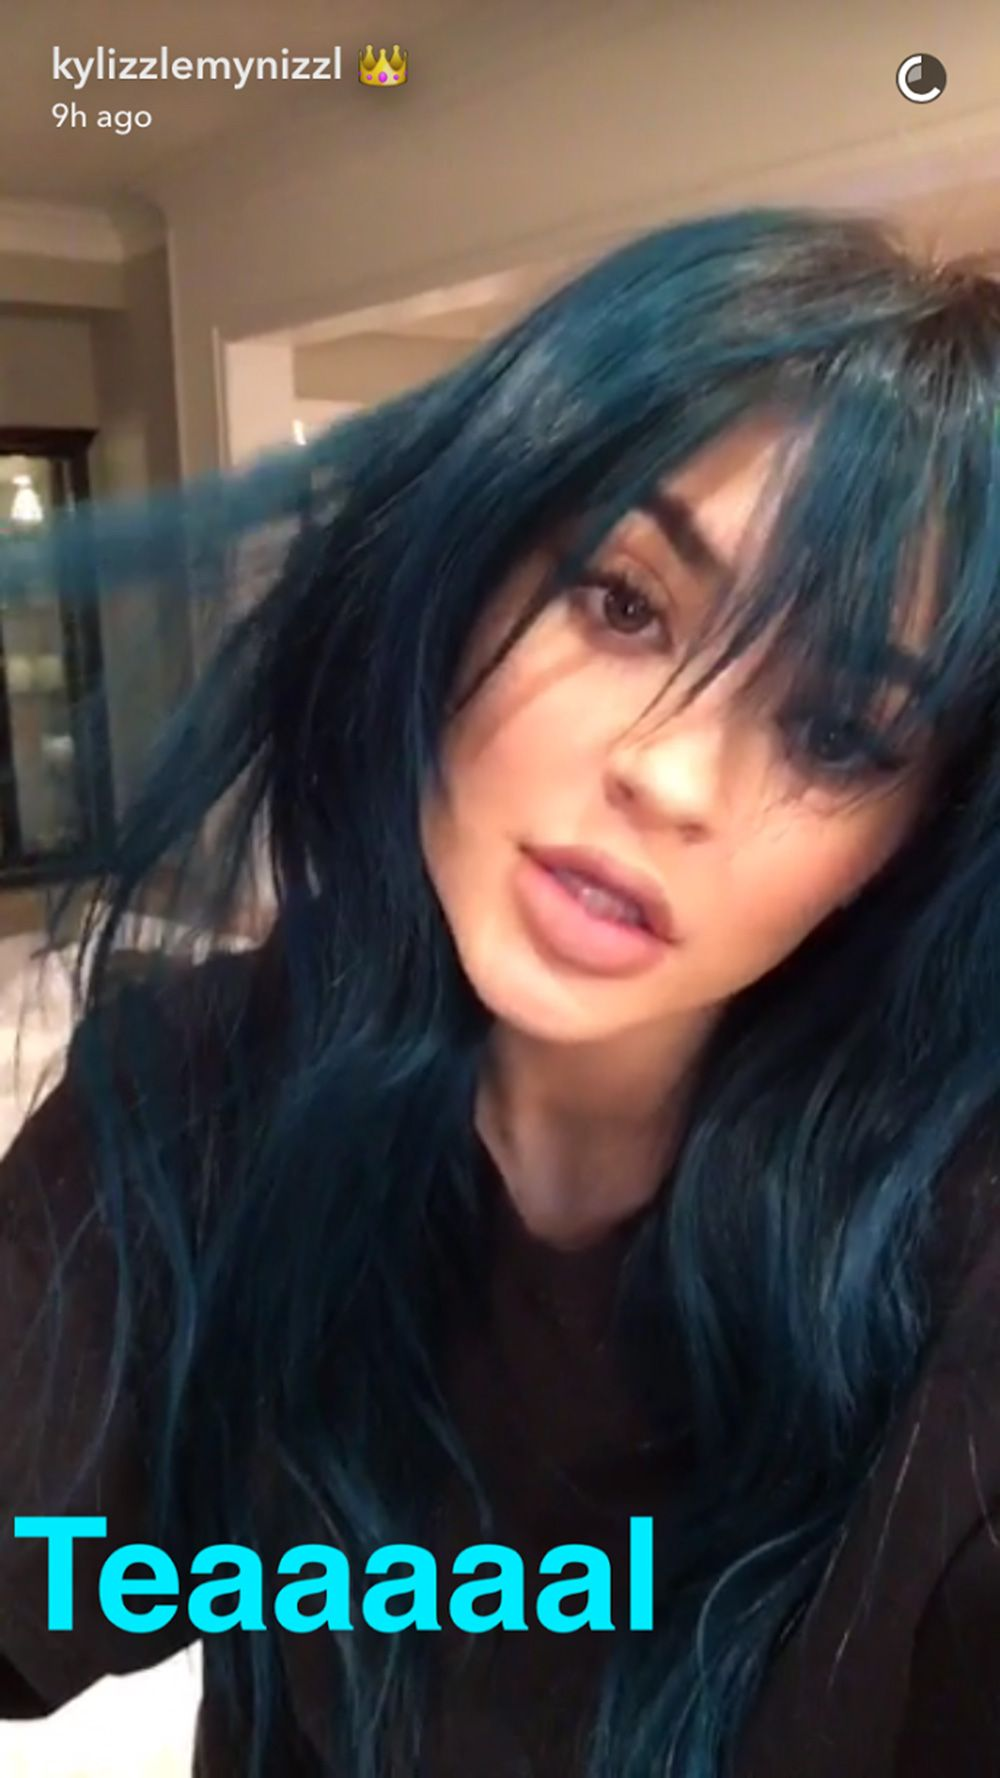 Kylie Jenner Just Brought Back One Of Her Trademark Hair Colors - MTV